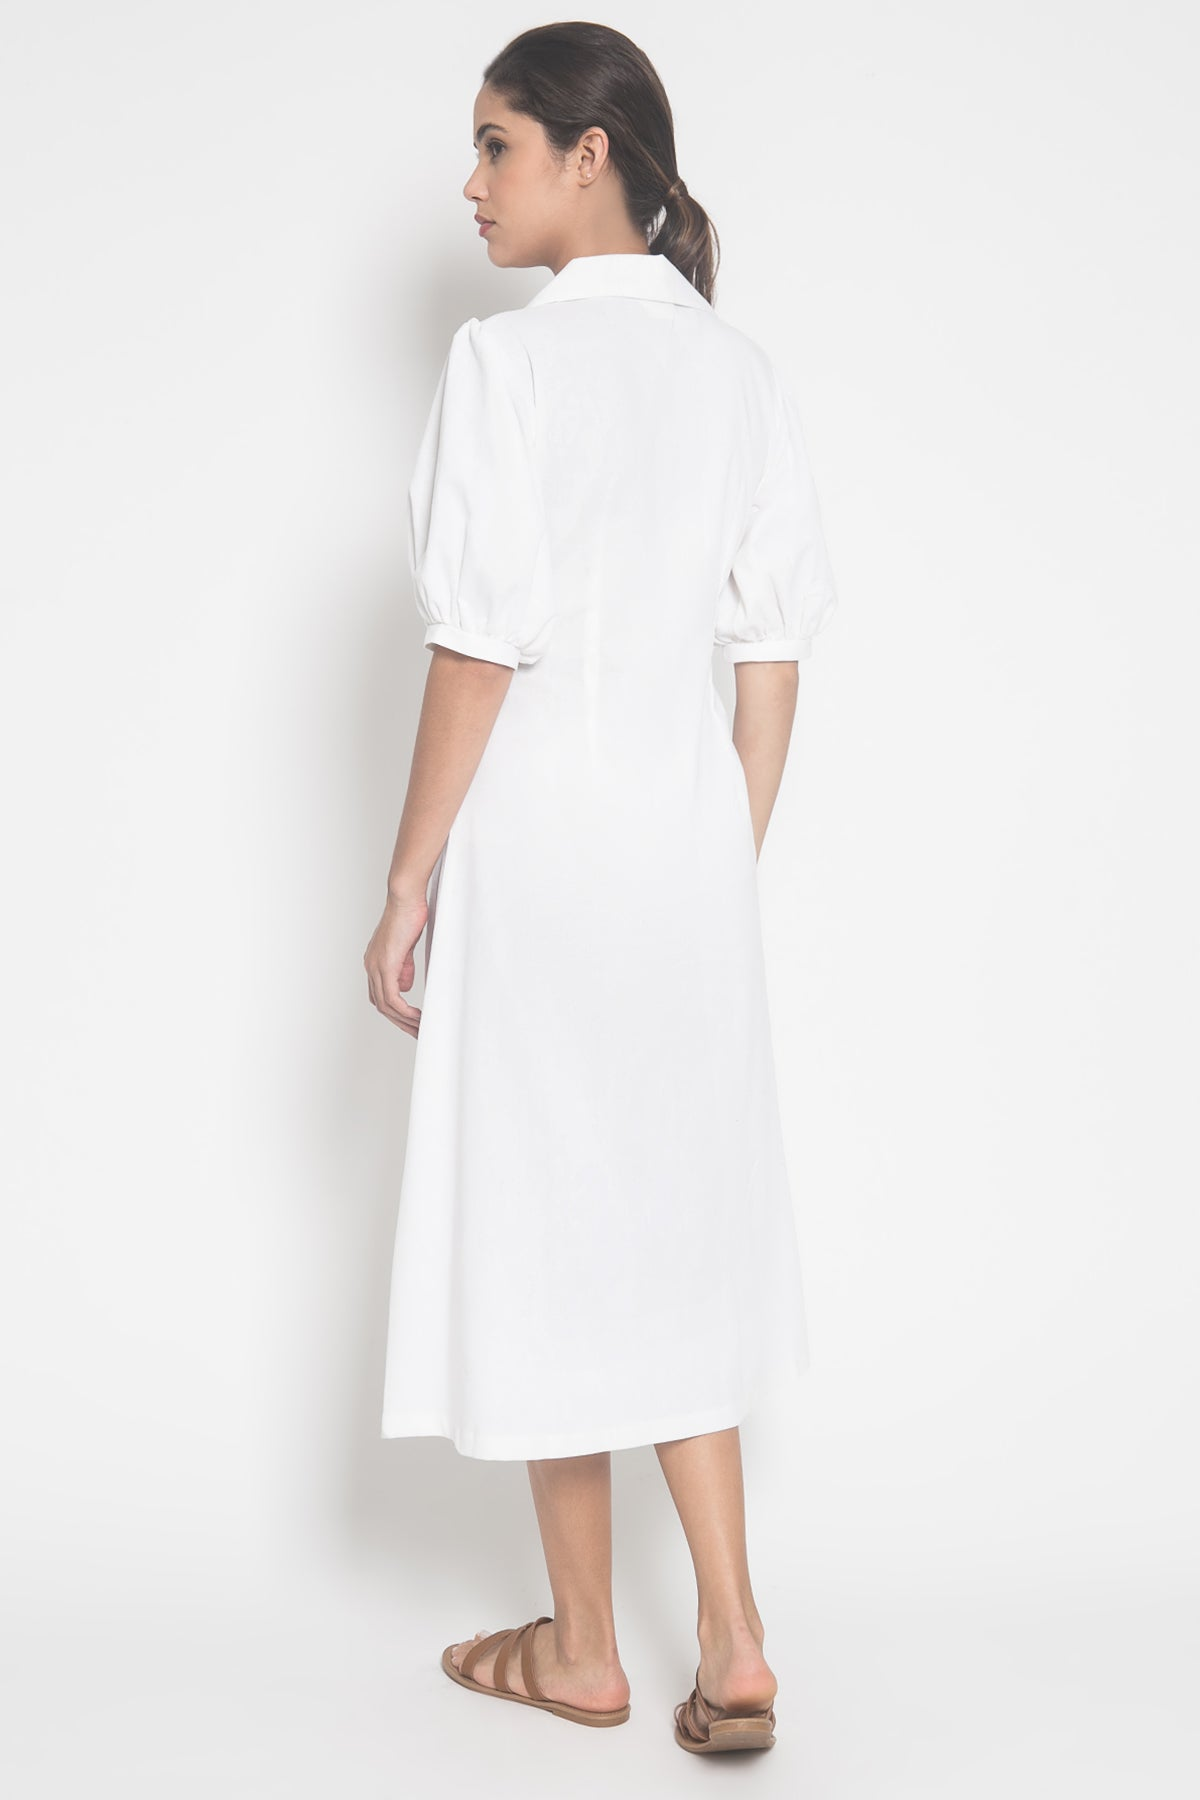 Ellena Dress in White